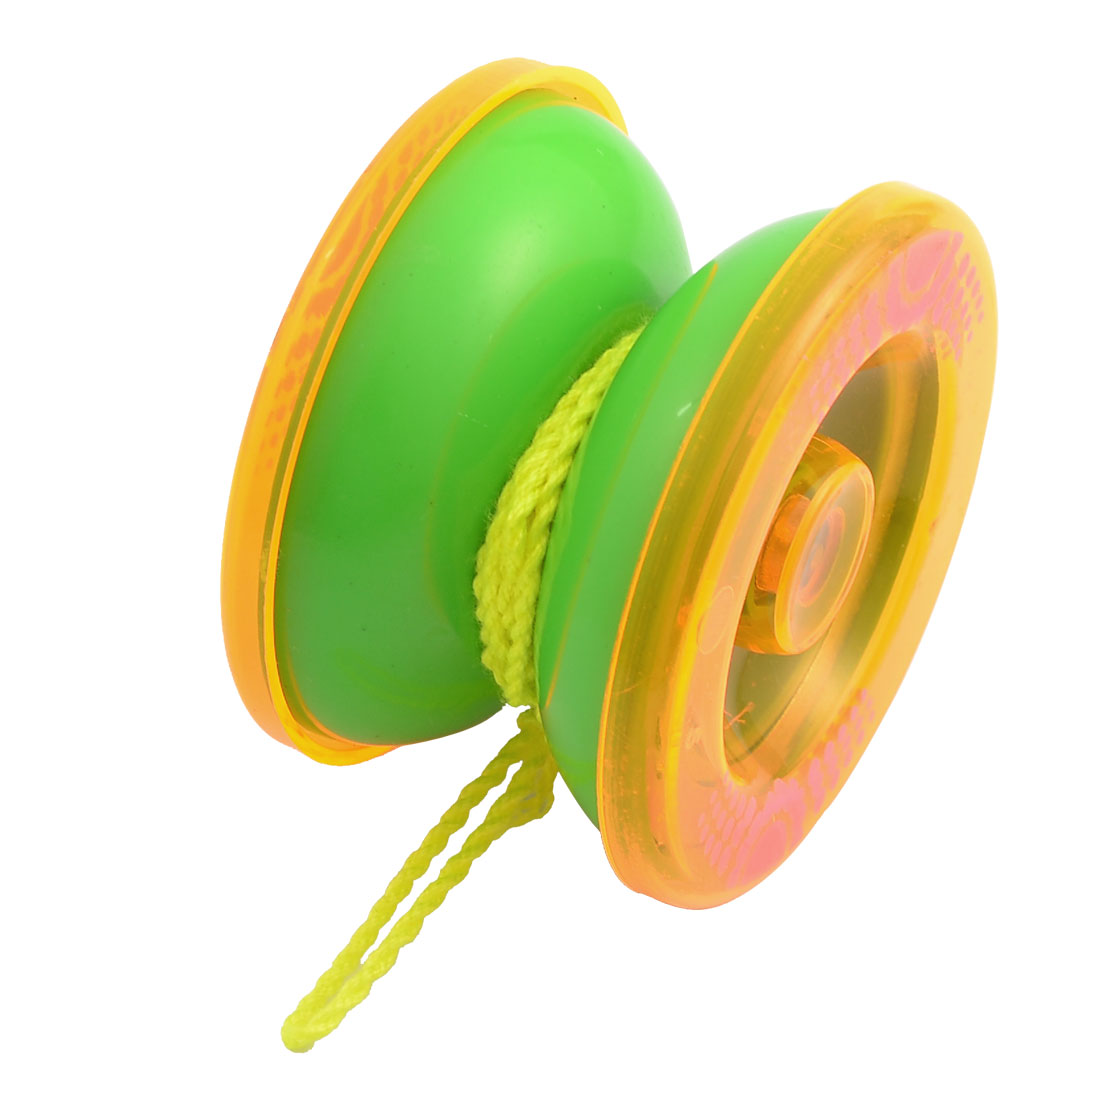 "2.2"" Diameter Wheel Orange Green Plastic Playing Yo Yo Toy for Children"